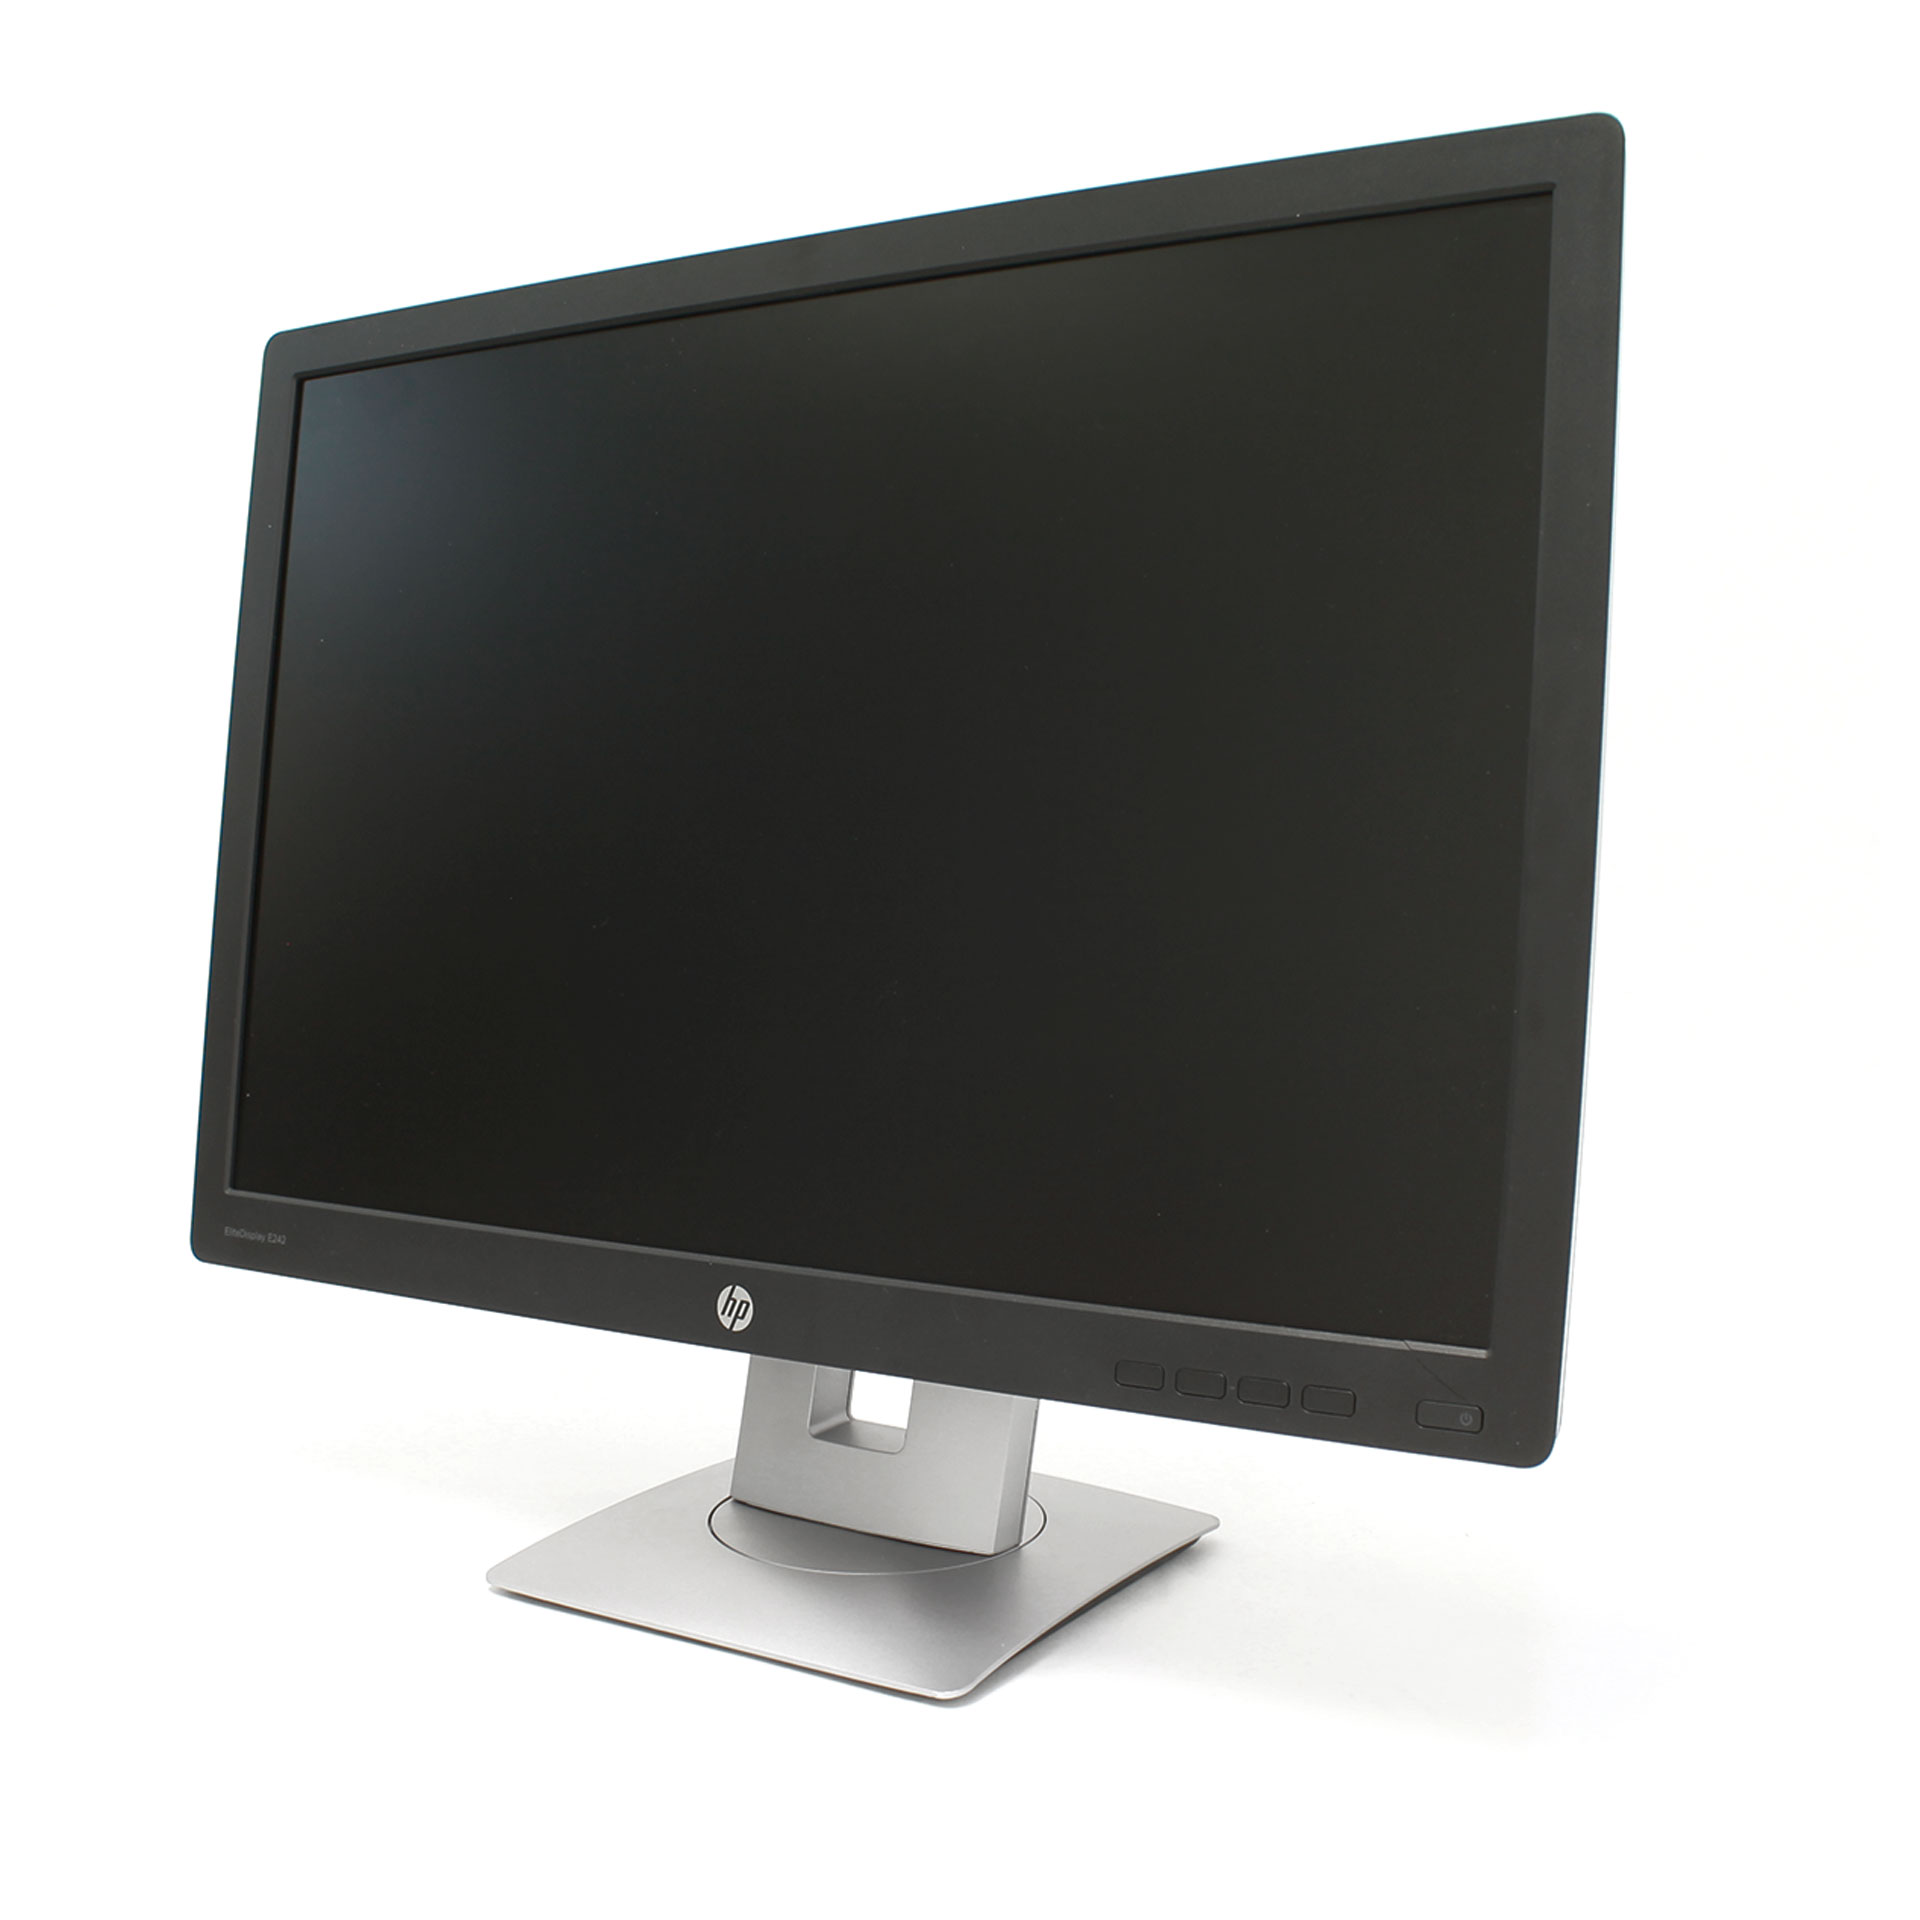 "HP EliteDisplay E242 24"" Monitor N0Q25A 1920x1200 250cd/m 1000:1"